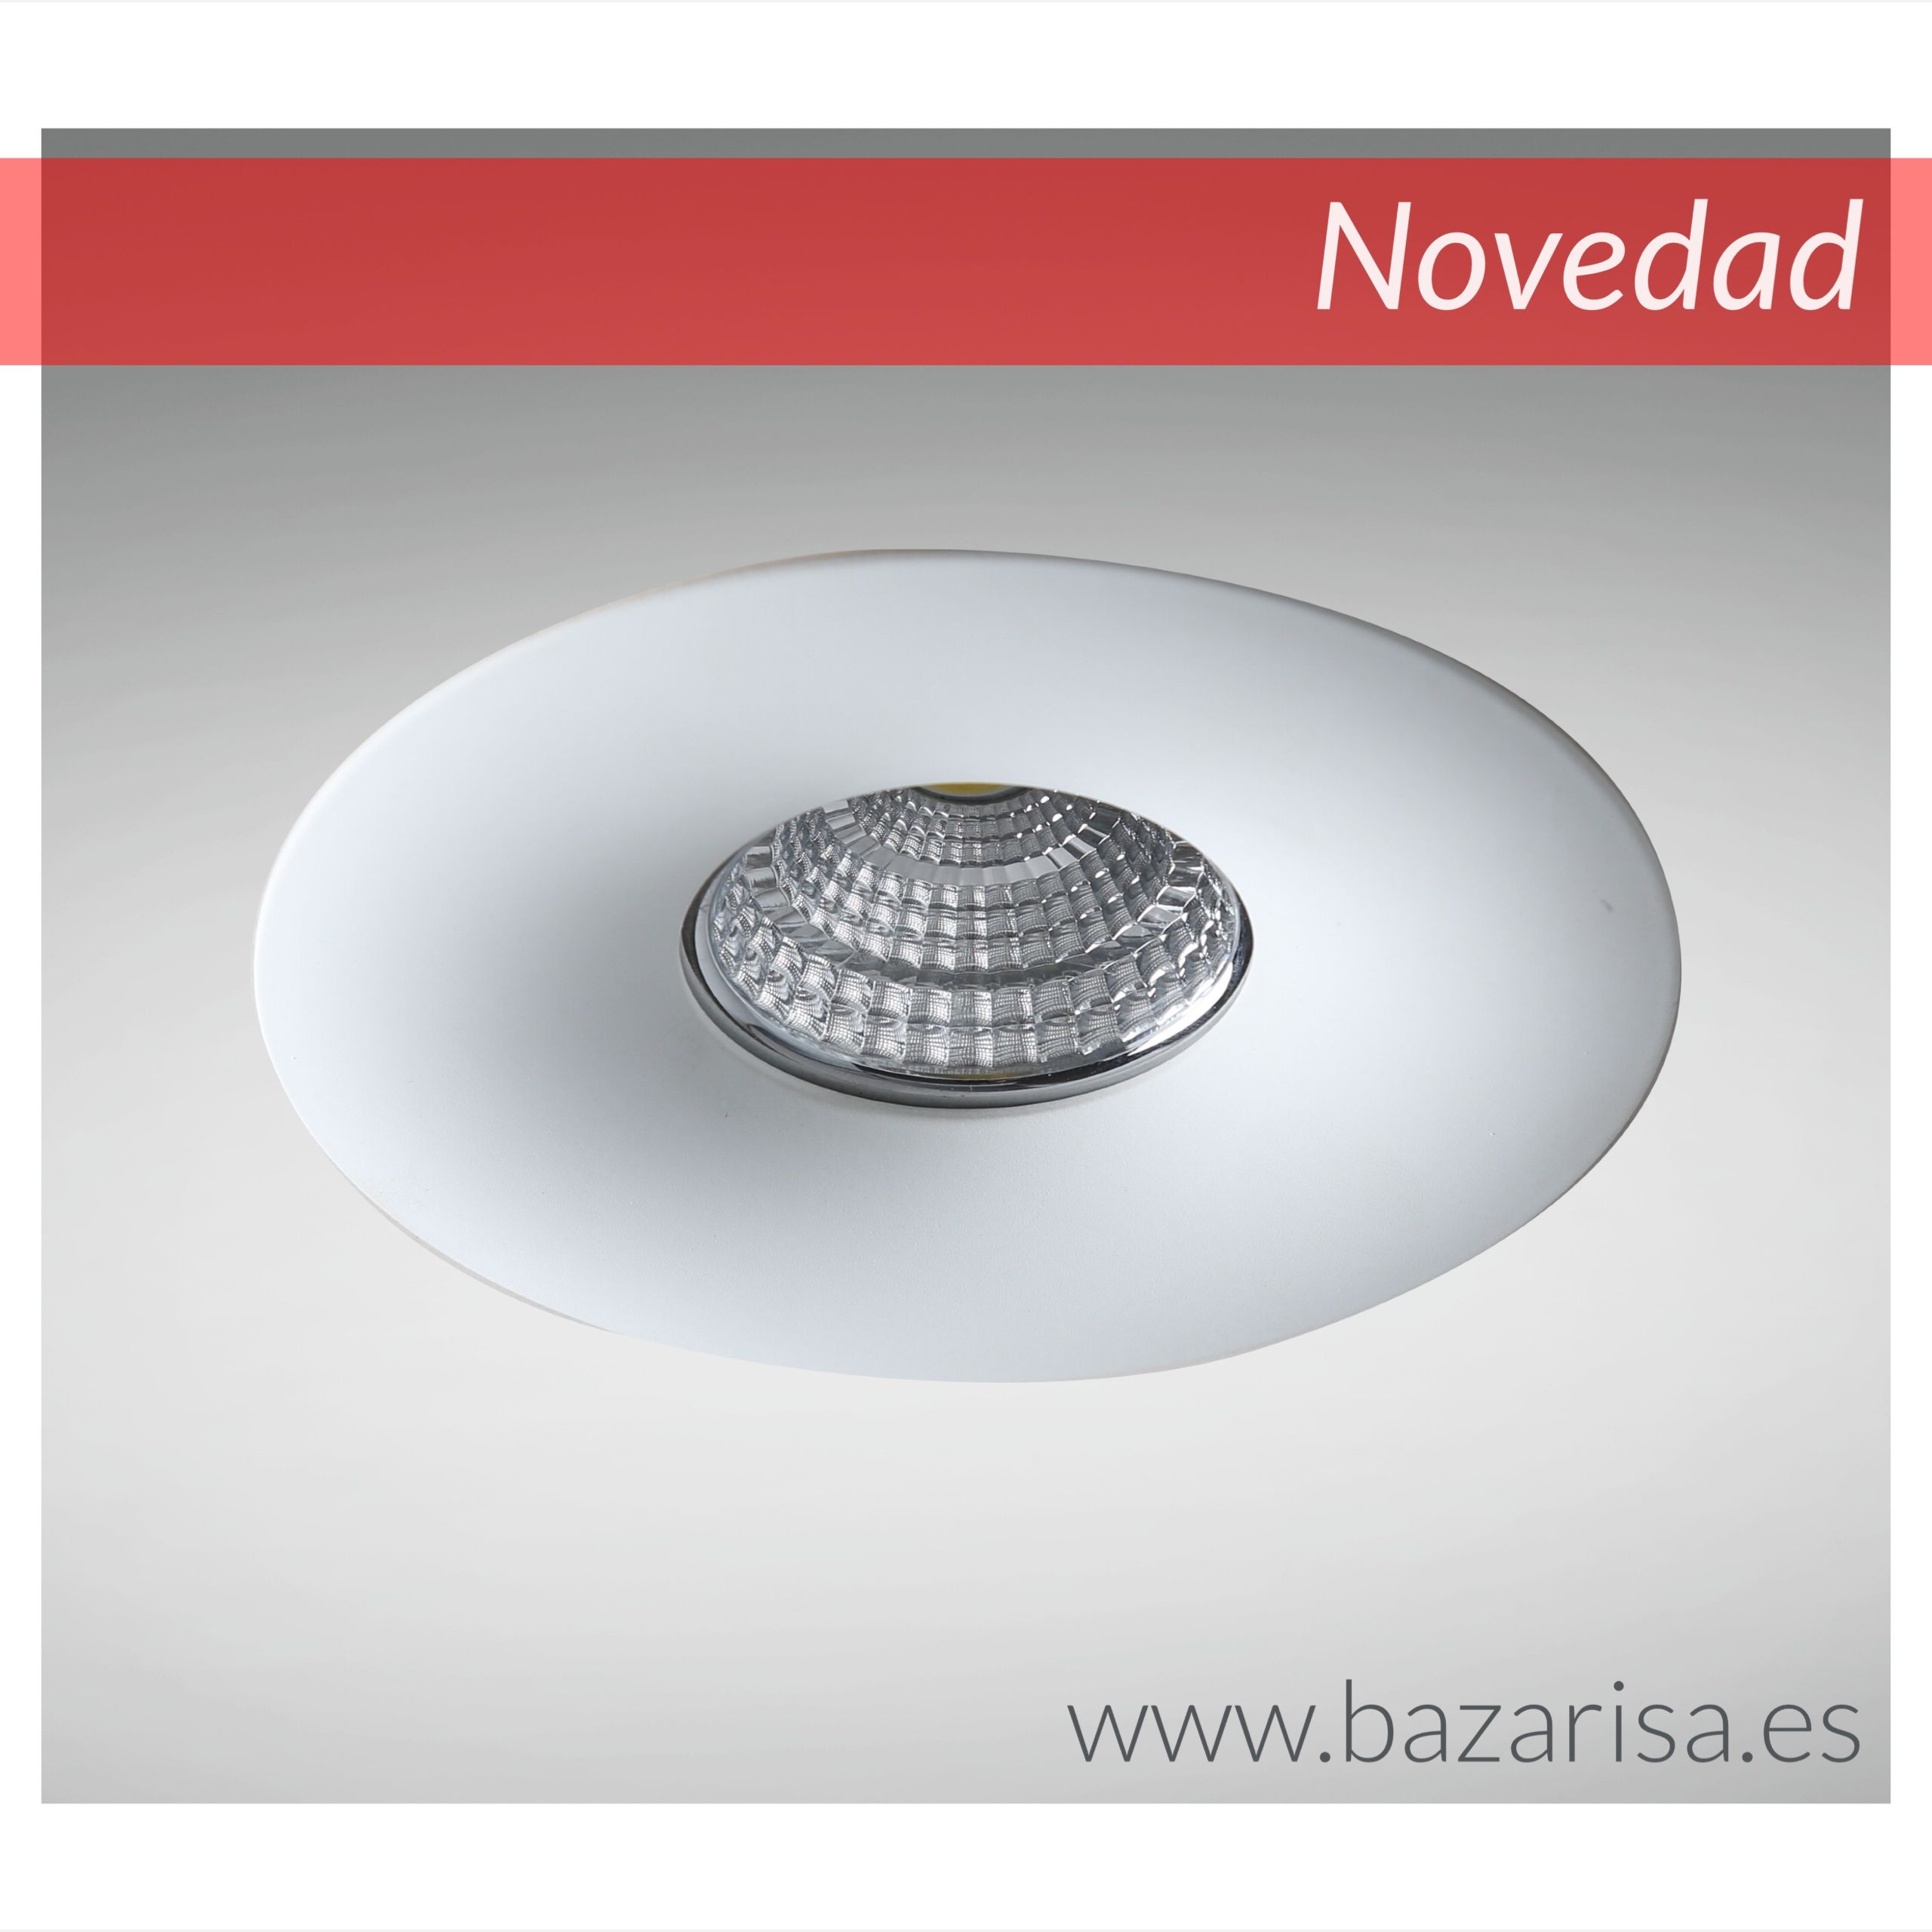 Lamparas Salon Modernas Led Nuevo Foco Empotrable Led Blanco Liso Focos Empotrados